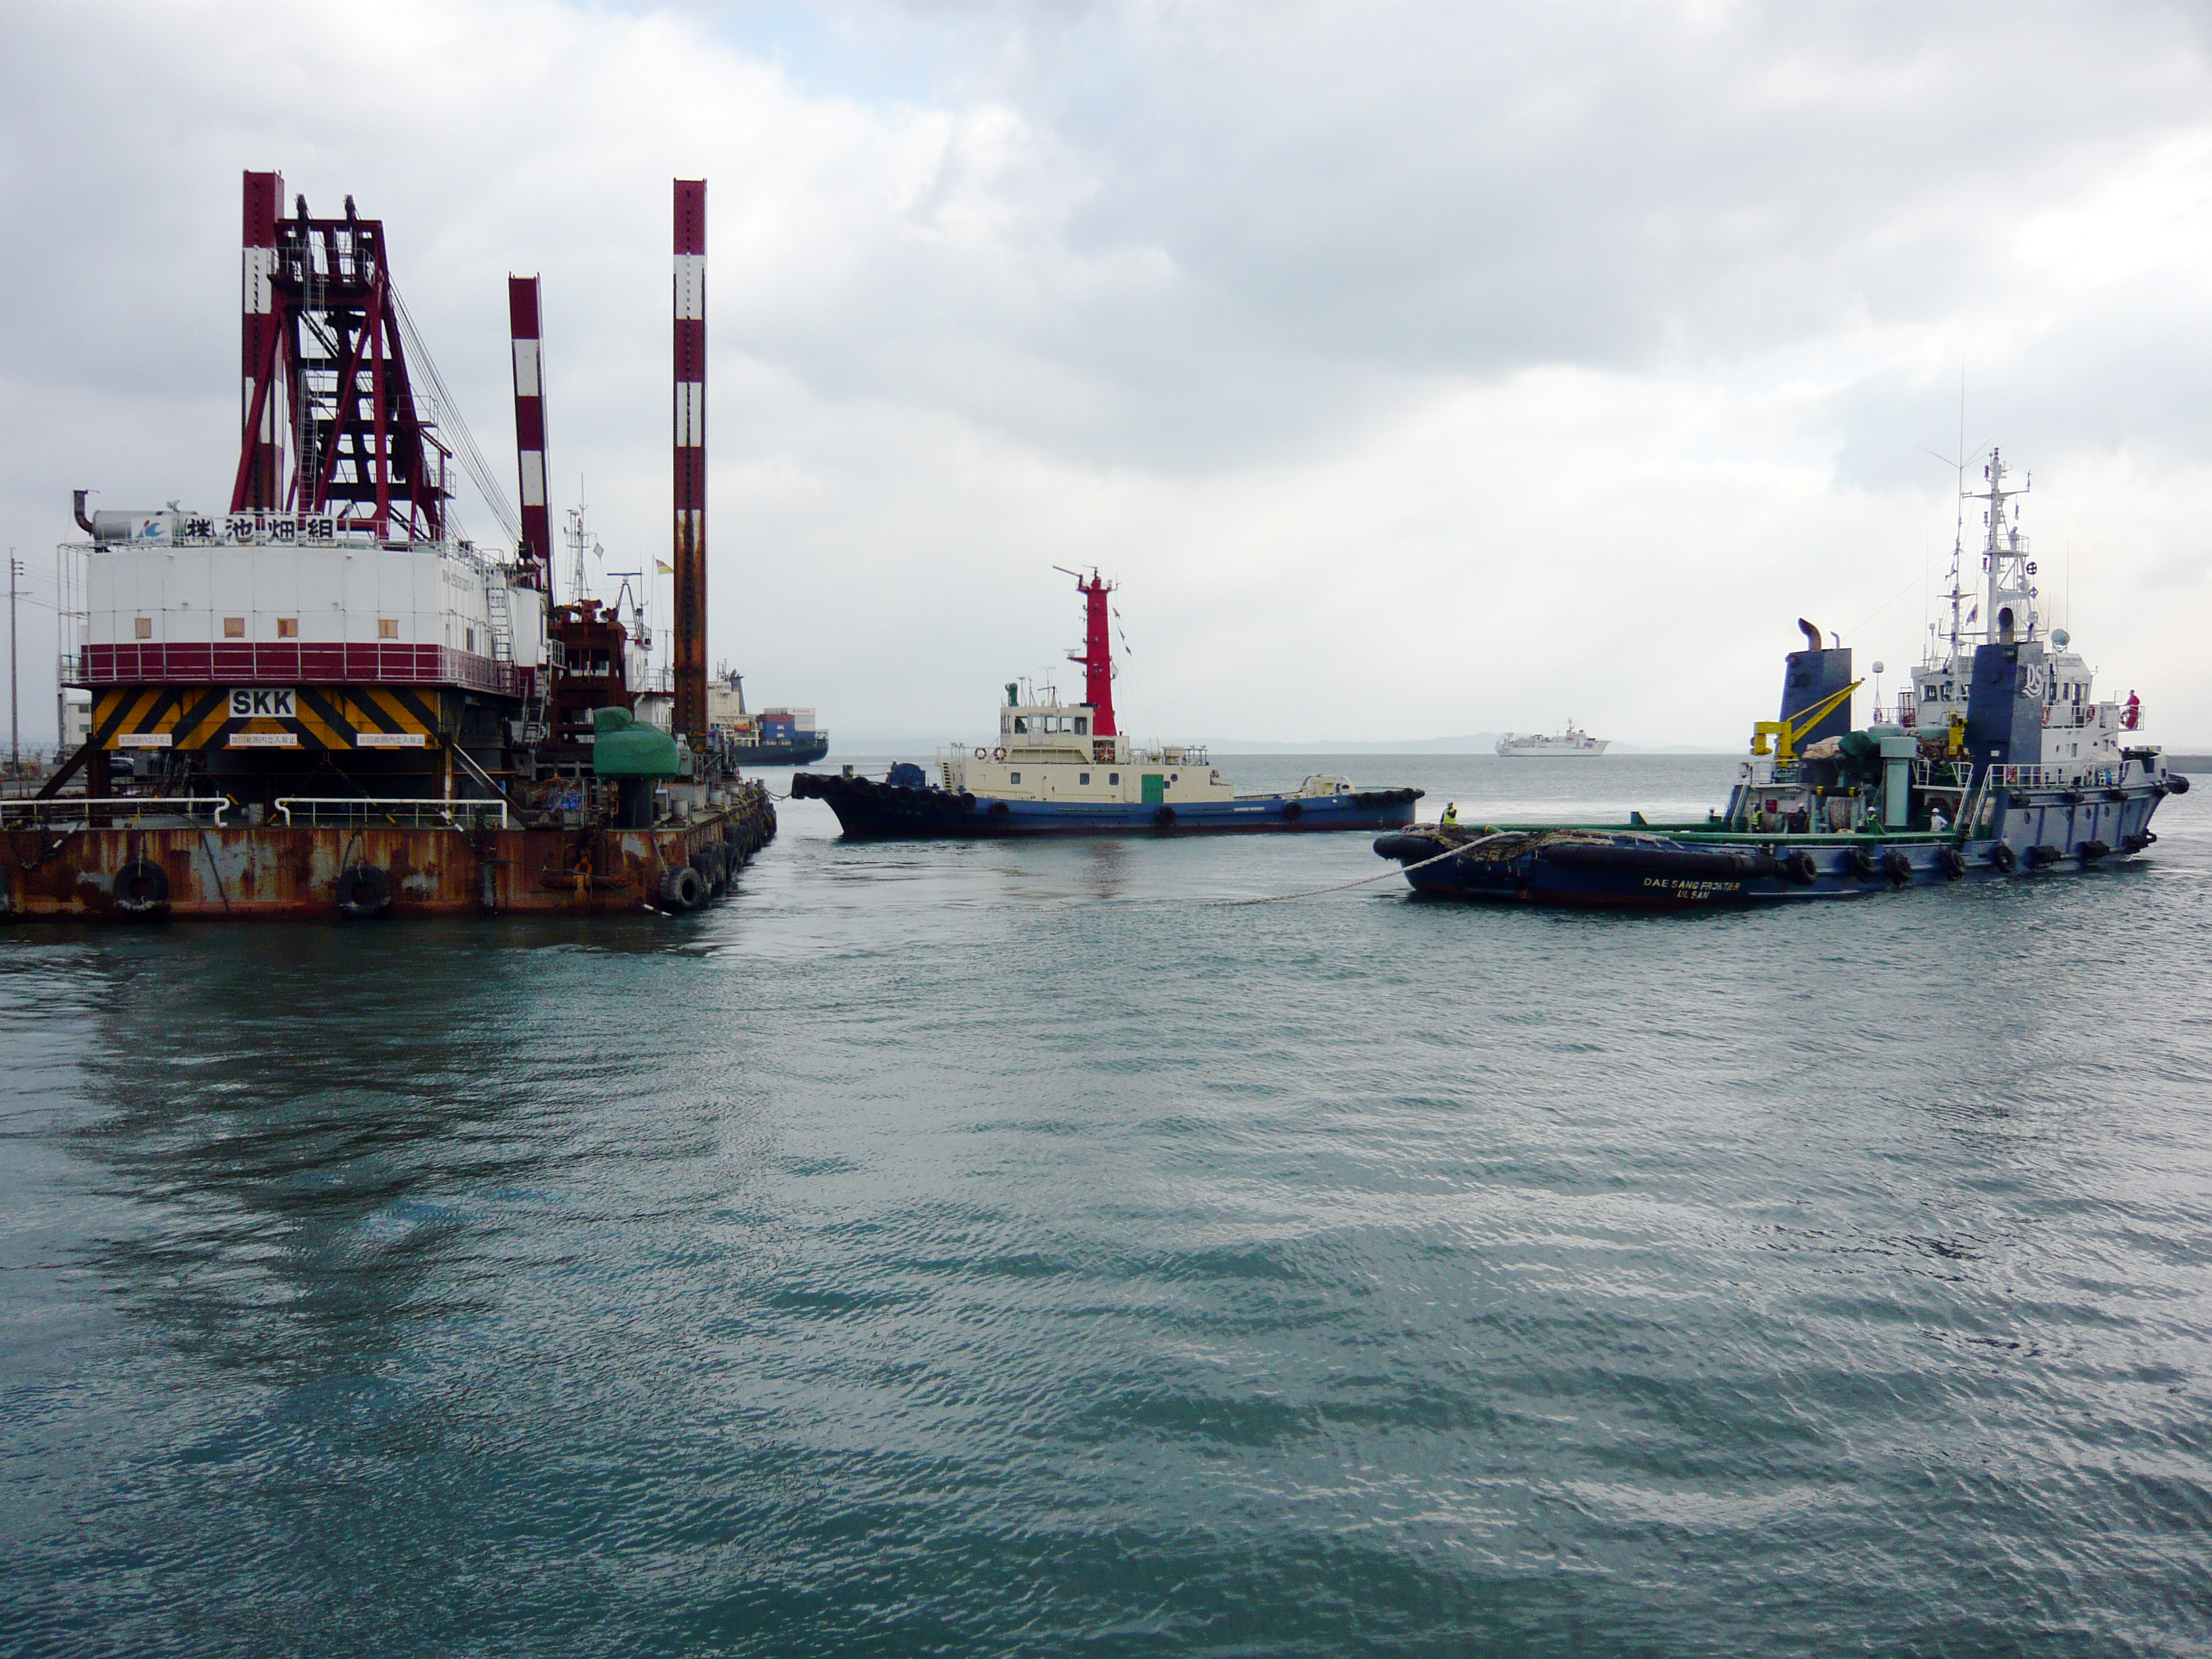 2011 - 2015, Towing of 24M3/30M3 Grag Dredger Barge (Japan and Singapore)